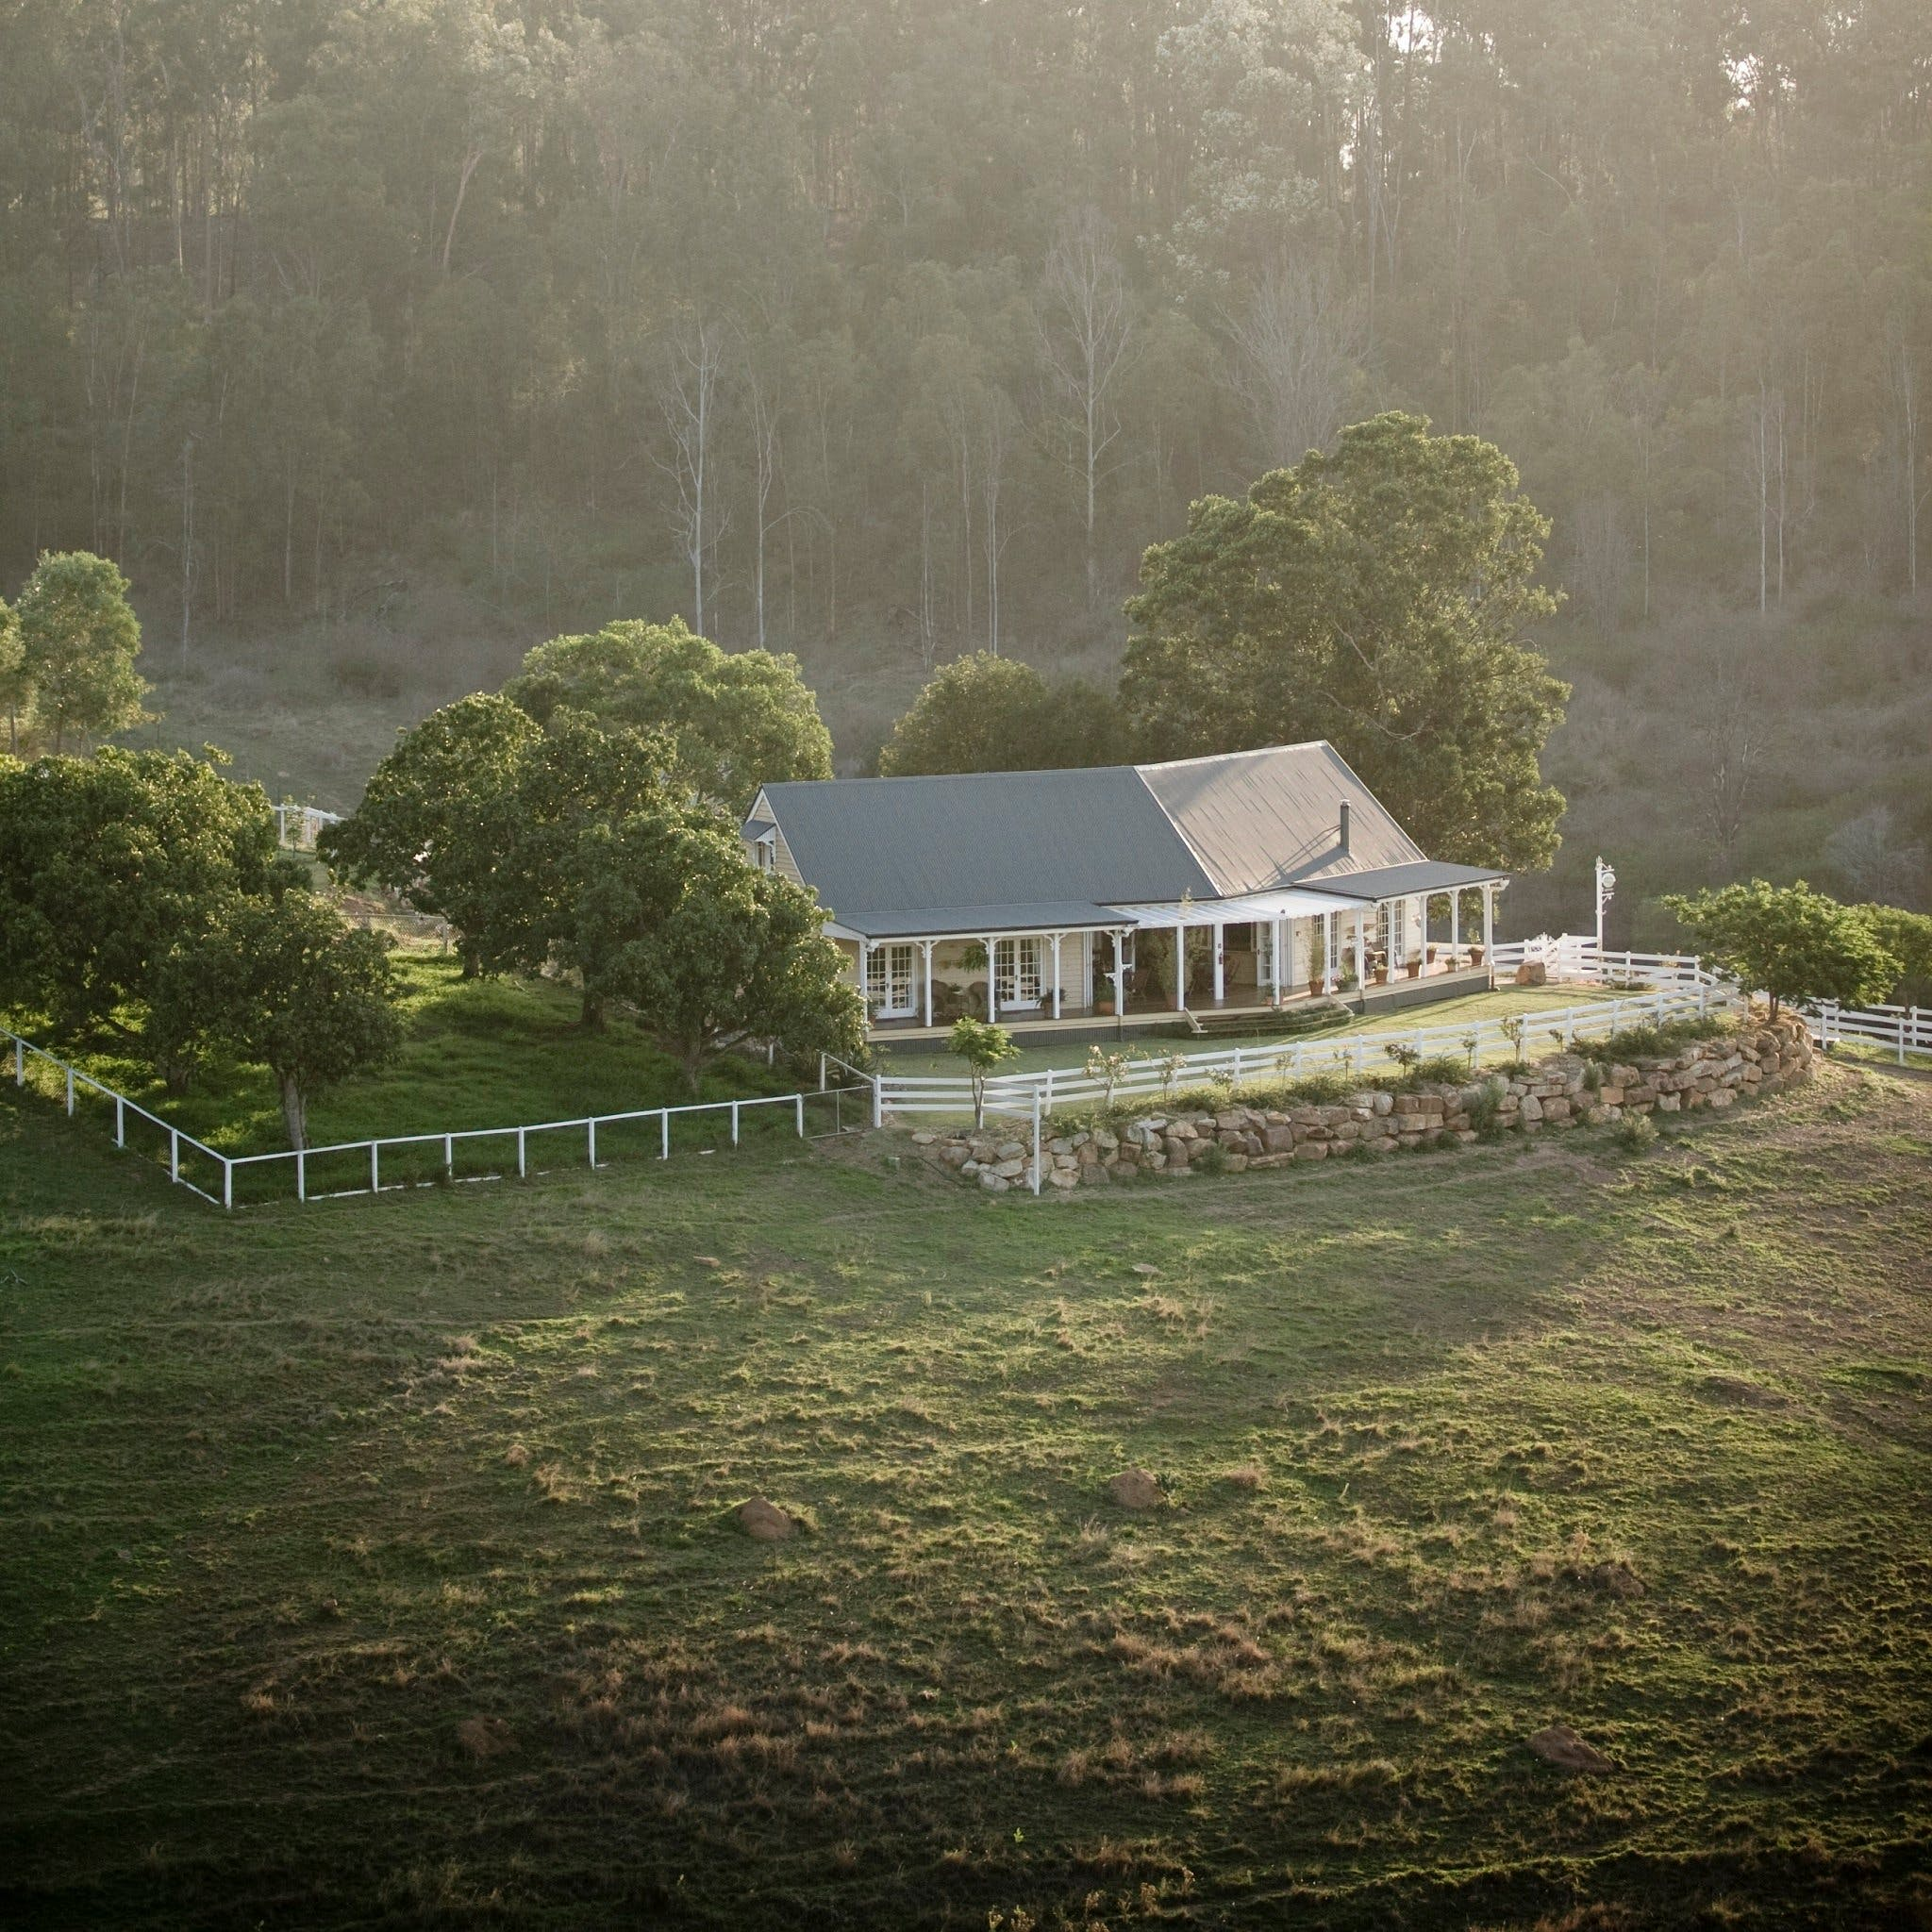 Branell Homestead Bed and Breakfast - Whitsundays Accommodation